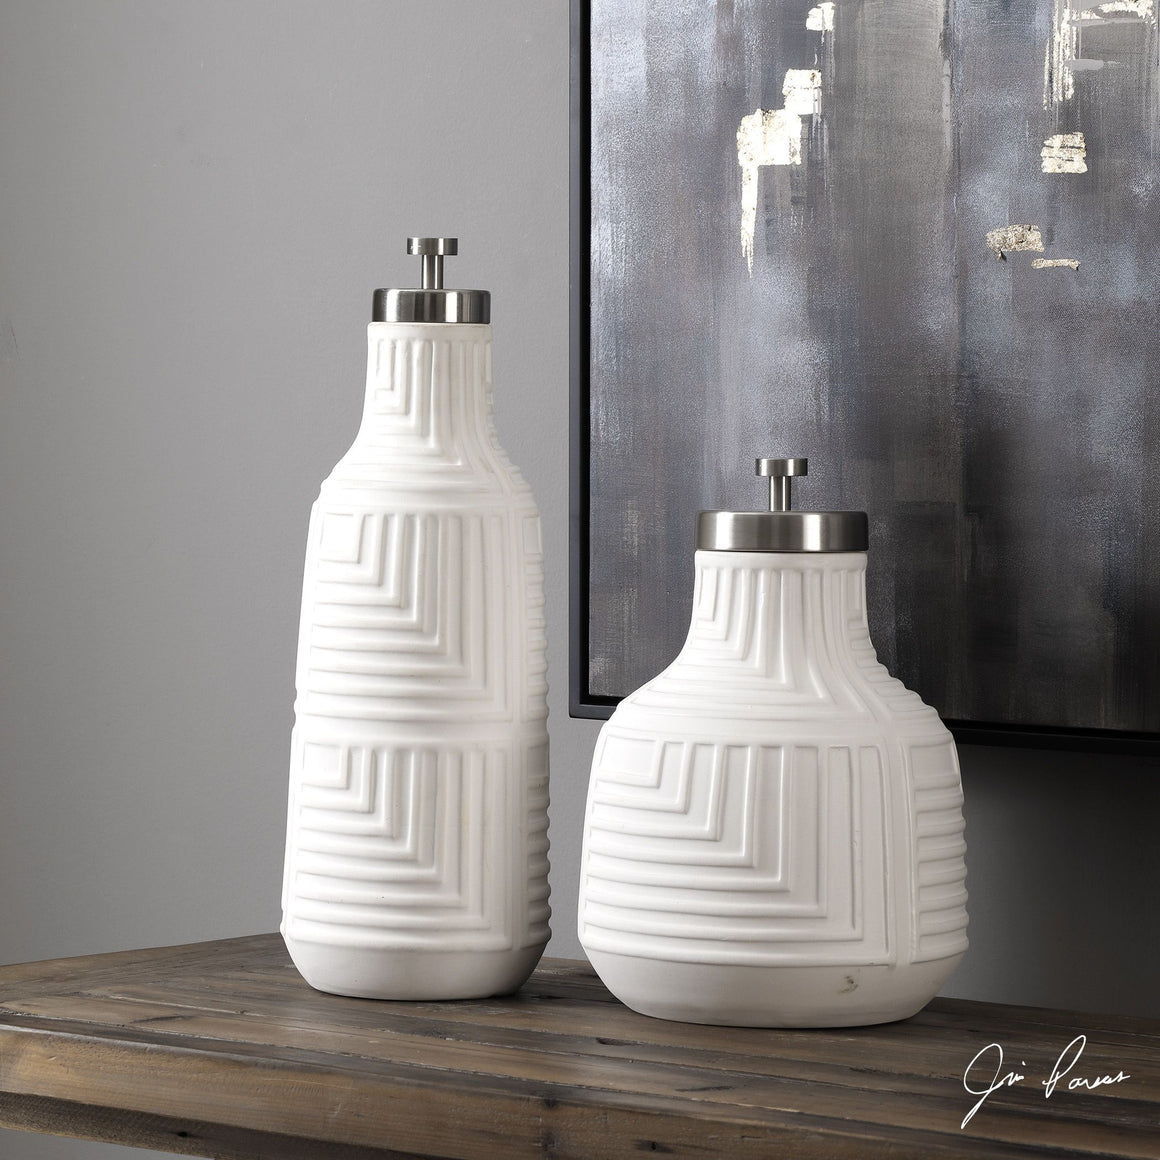 Chandran Matte White Containers S/2 - taylor ray decor